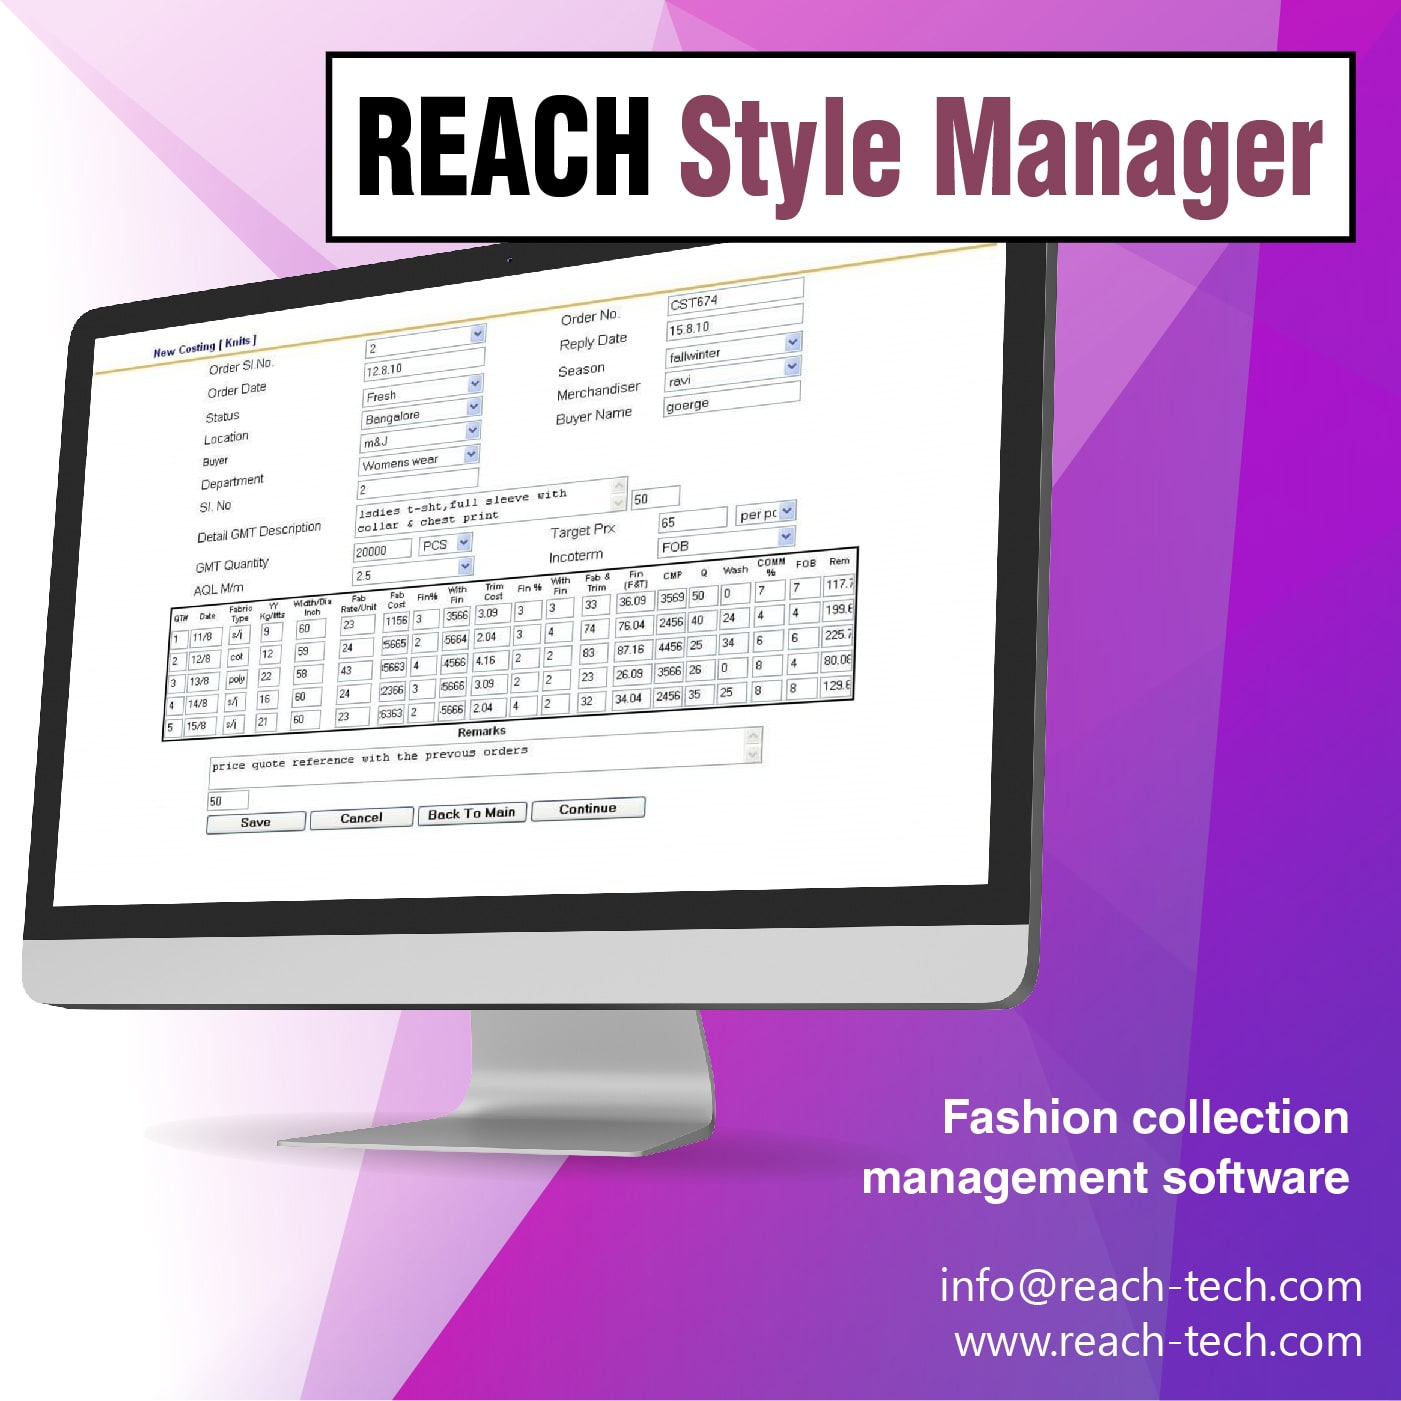 fashion-collection-management-software-5